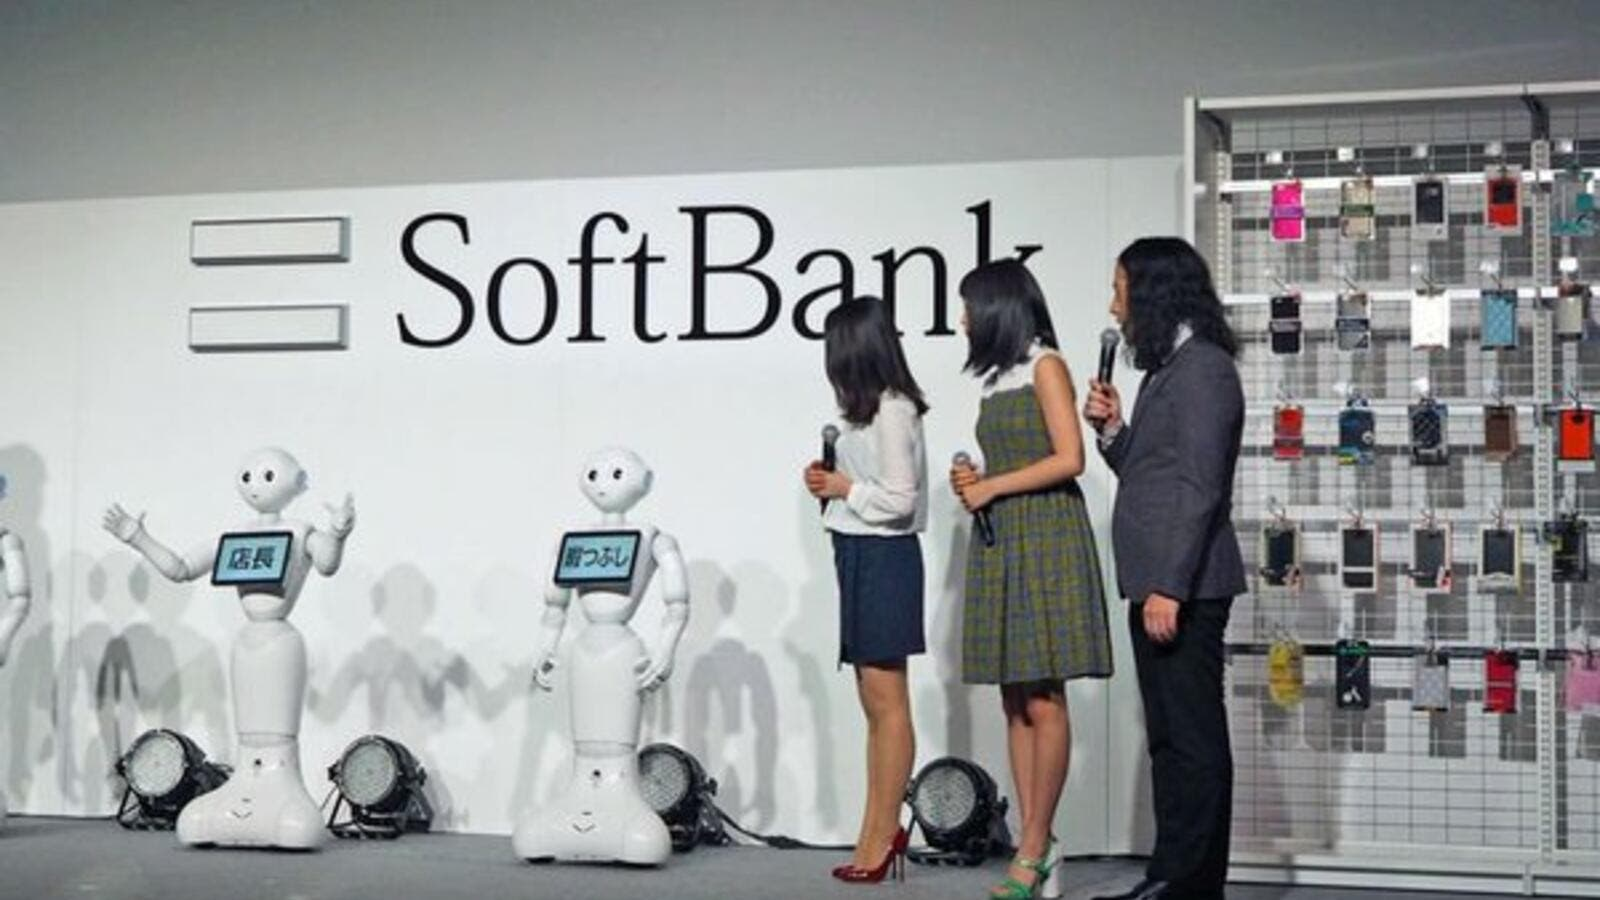 The new partnership is an ambitious effort by SoftBank and its billionaire founder, Masayoshi Son, to expand the company's footprint worldwide. (Twitter)